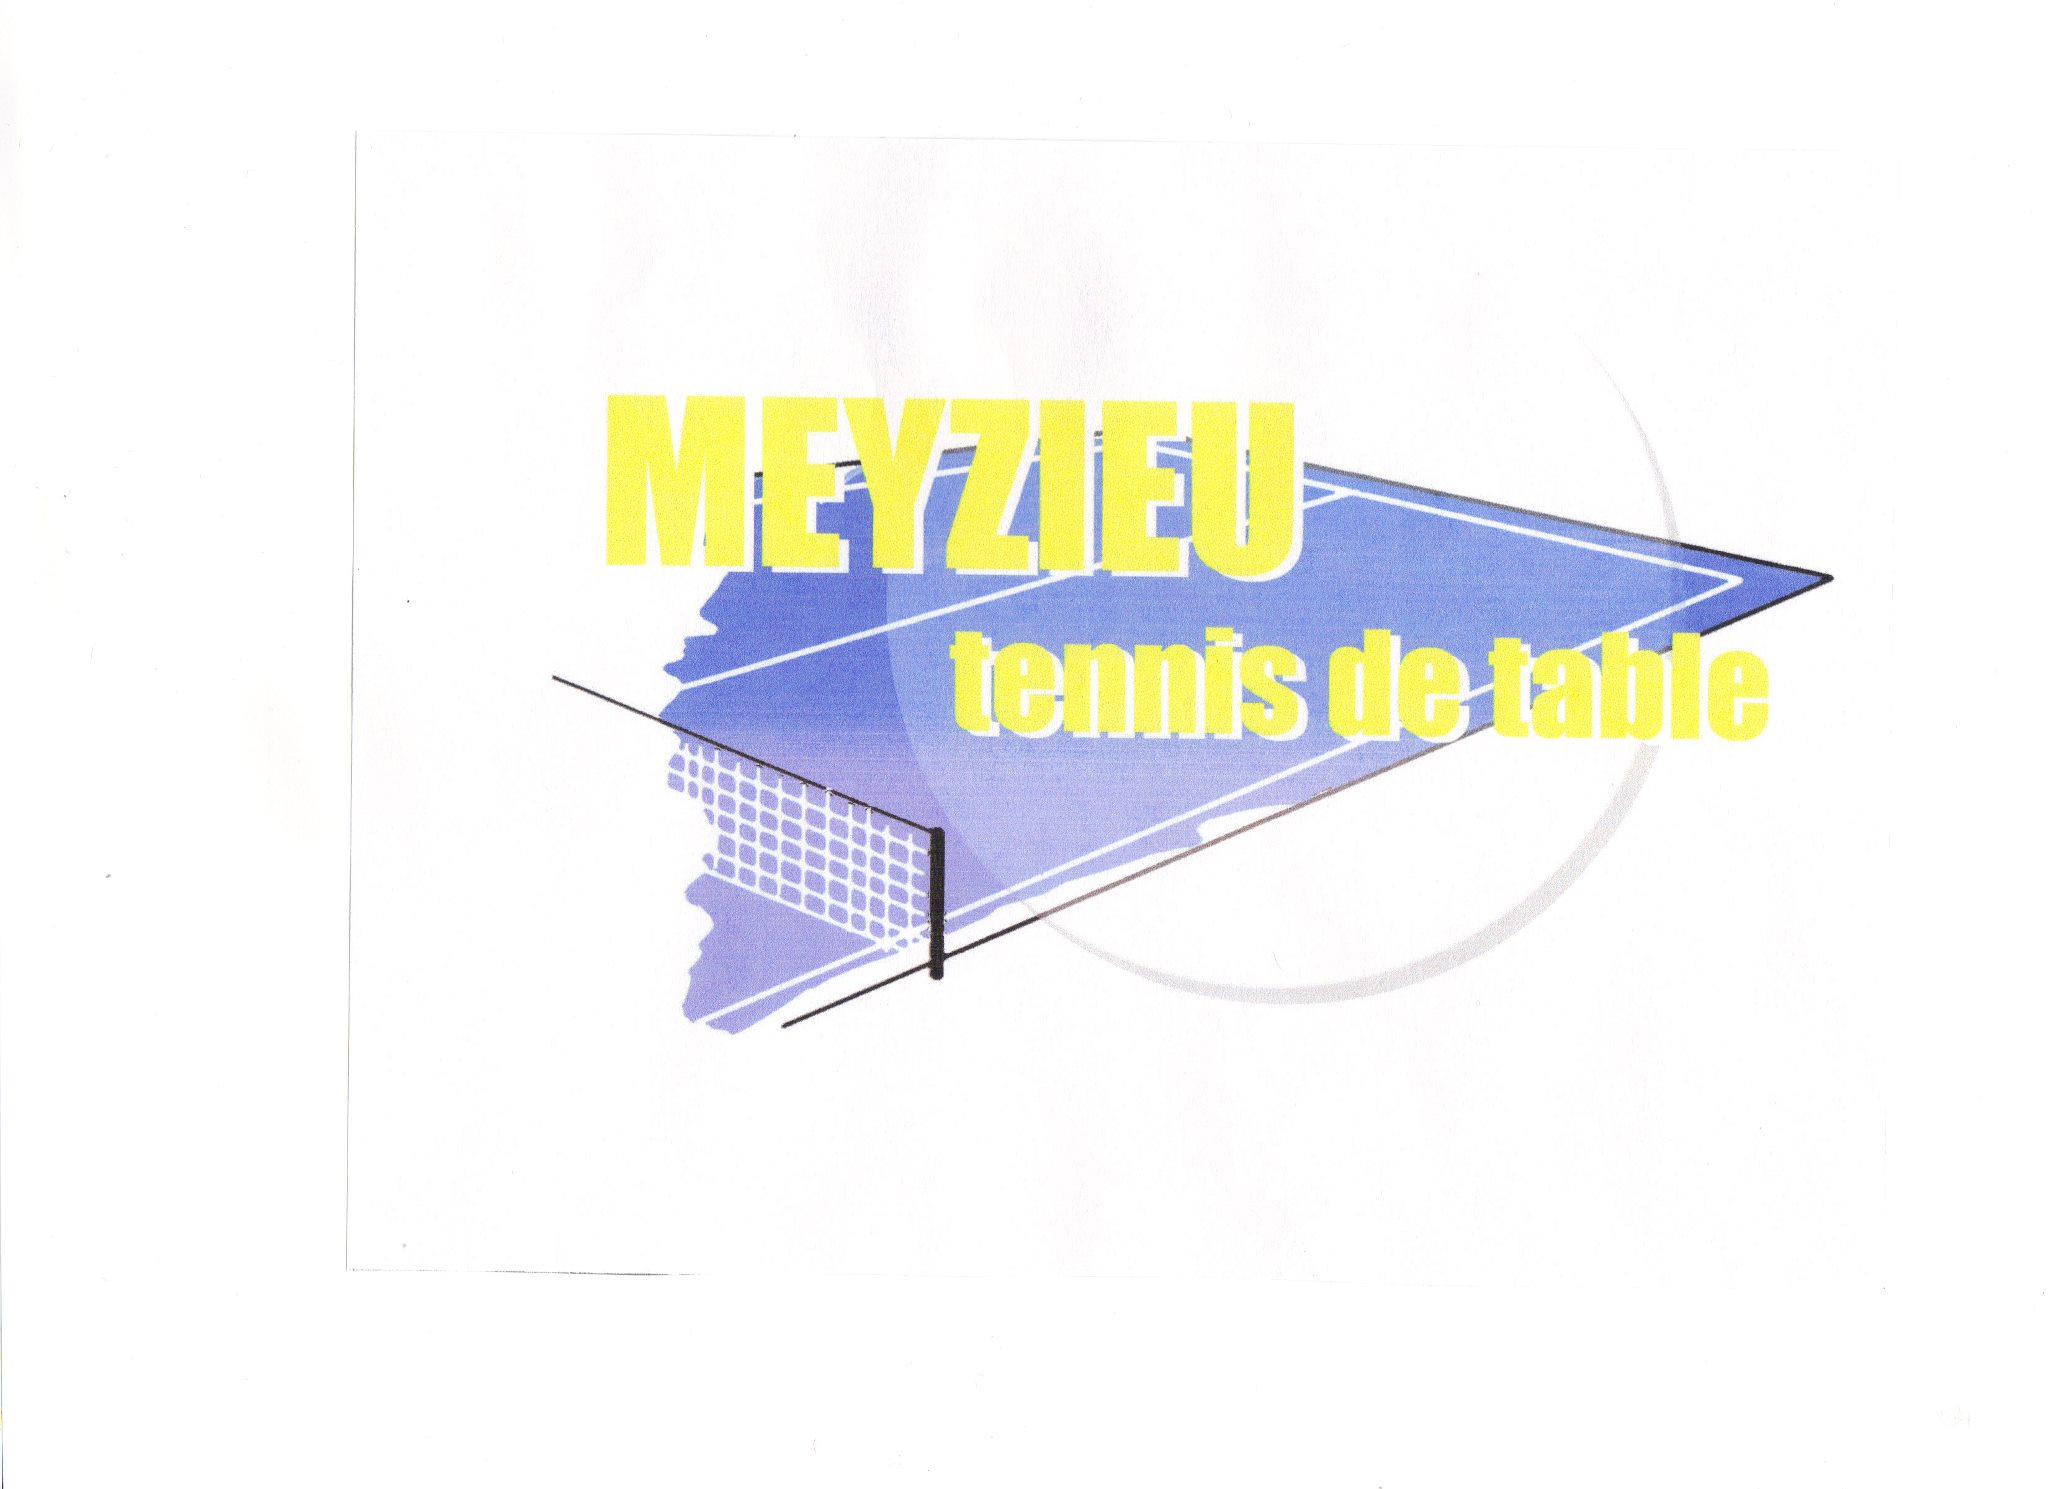 Crit rium f d ral tour 2 convocations messieurs dames - Federation francaise de tennis de table ...